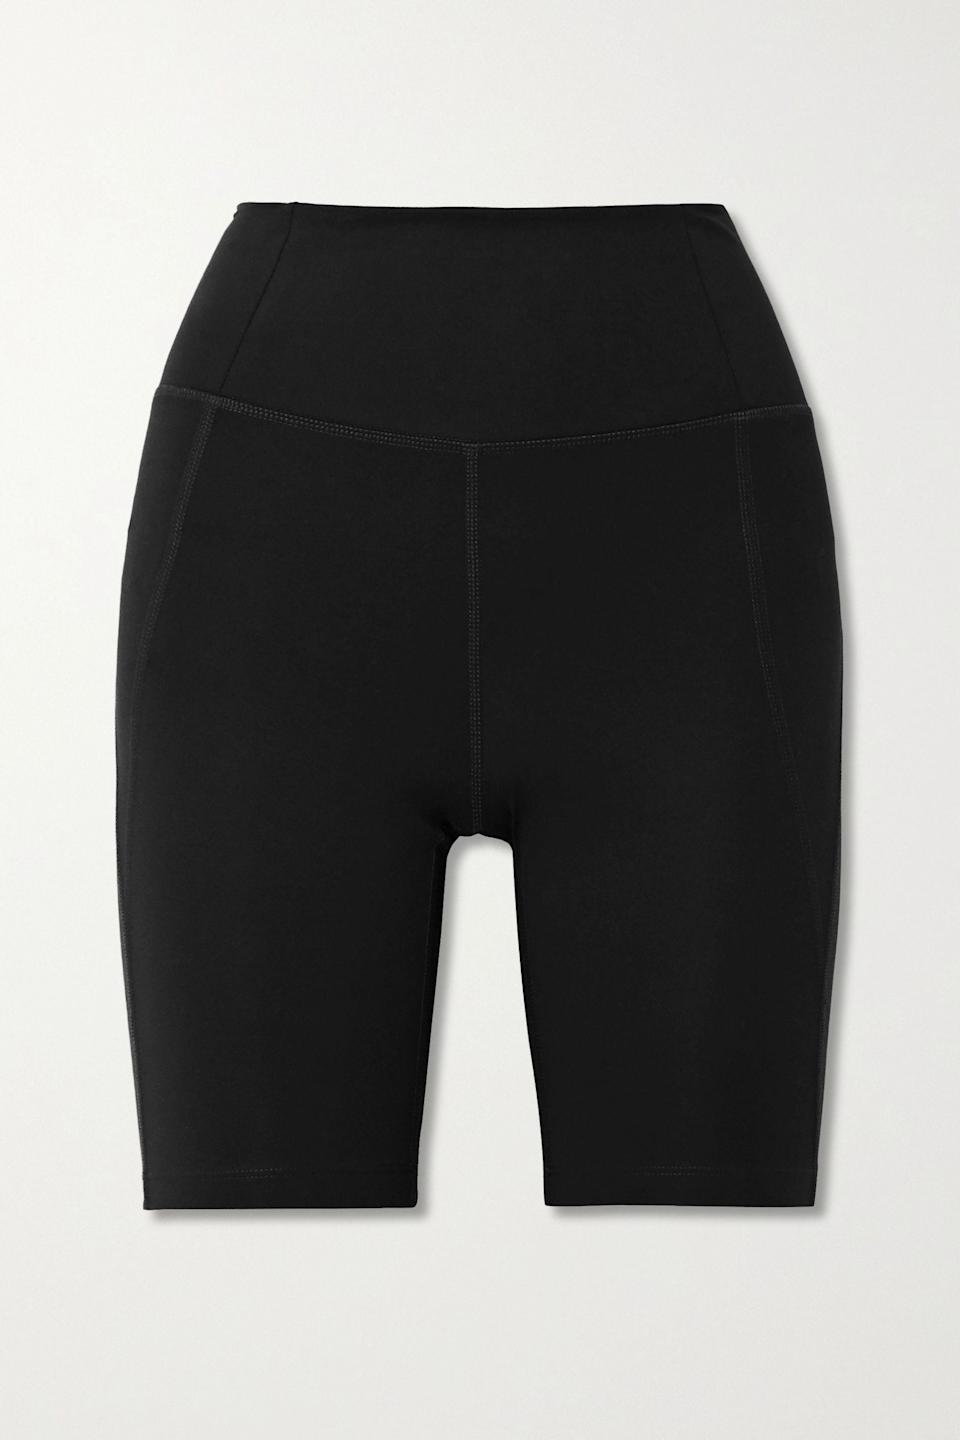 """I'm patiently waiting for these to come back into stock. I'll wear them under dresses for long days in the park, and for the long cycle rides I've discovered in lockdown.<br><br><strong>Girlfriend Collective</strong> Bike Stretch Shorts, $, available at <a href=""""https://www.net-a-porter.com/en-gb/shop/product/girlfriend-collective/bike-stretch-shorts/1260791"""" rel=""""nofollow noopener"""" target=""""_blank"""" data-ylk=""""slk:Net-A-Porter"""" class=""""link rapid-noclick-resp"""">Net-A-Porter</a>"""